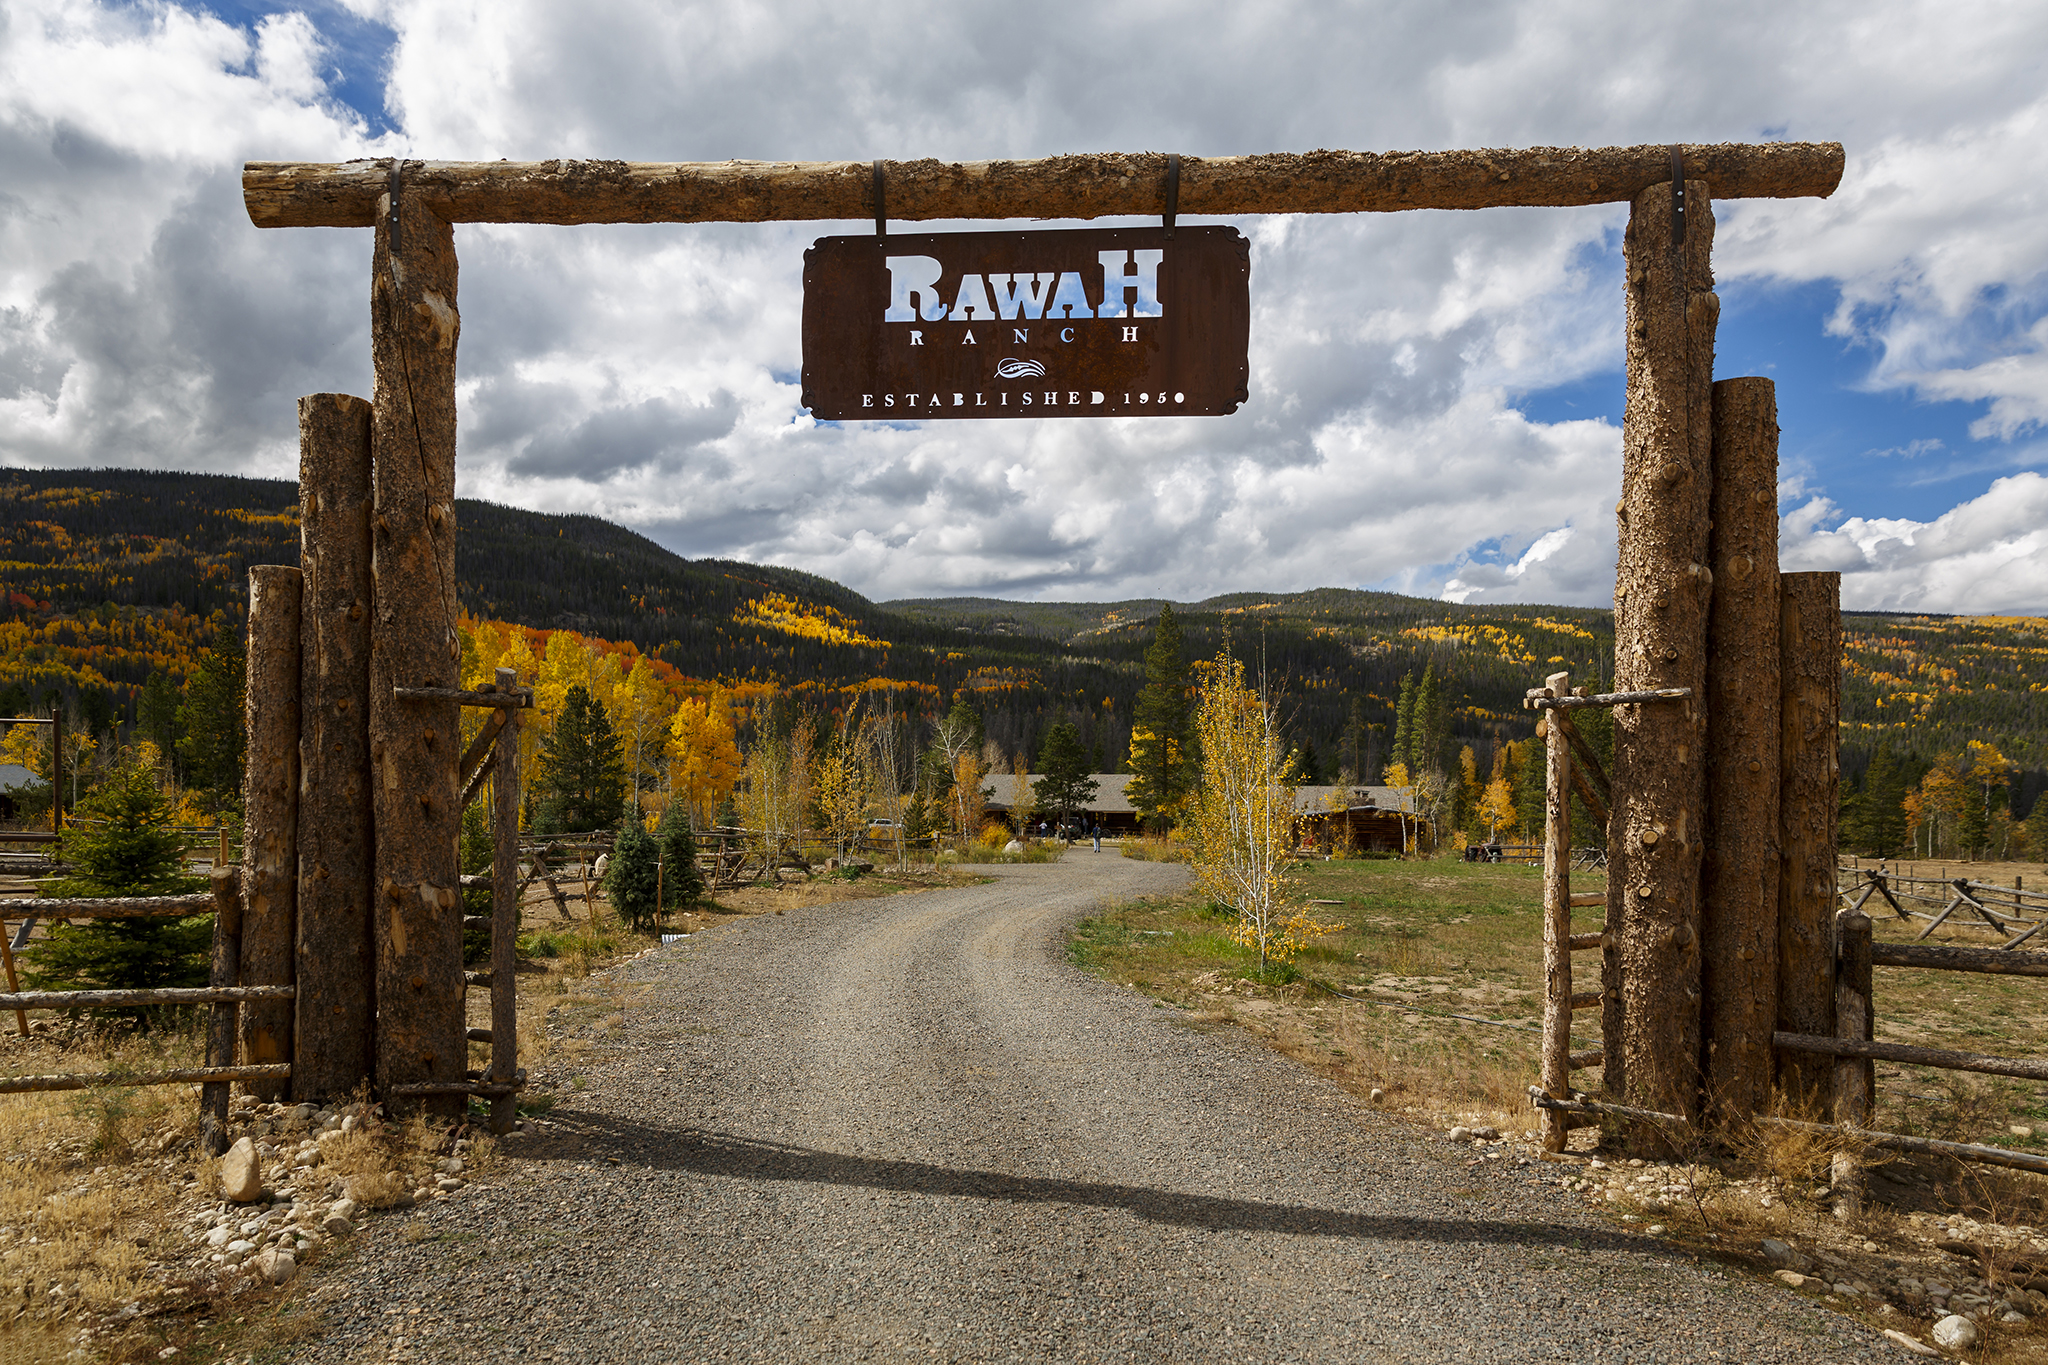 ranch-entrance-sign.jpg